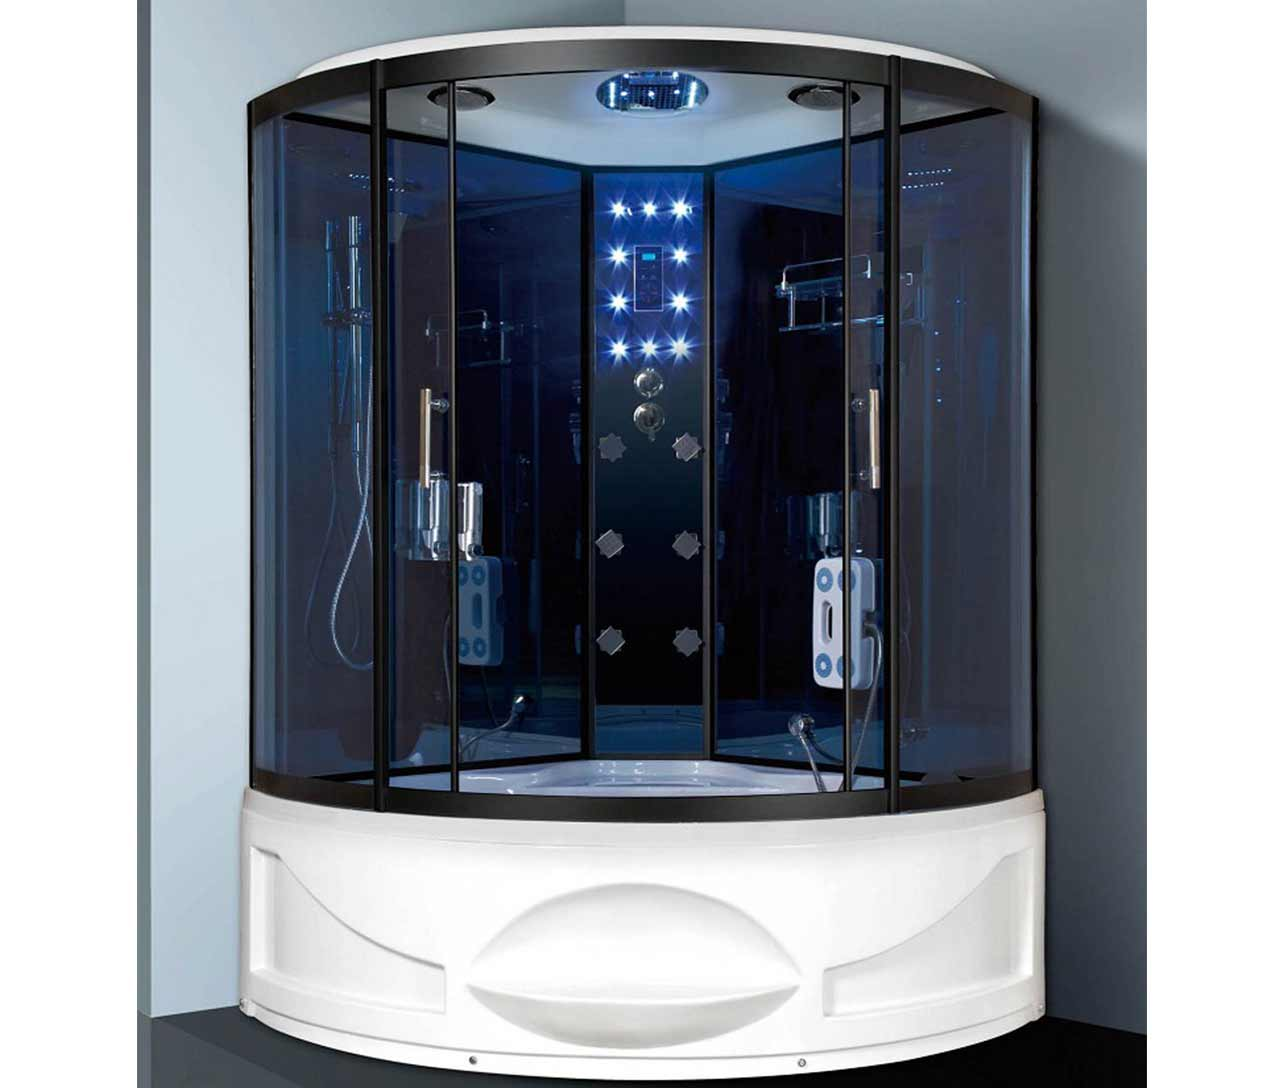 E 28 Steam Shower Luxury Spas Inc